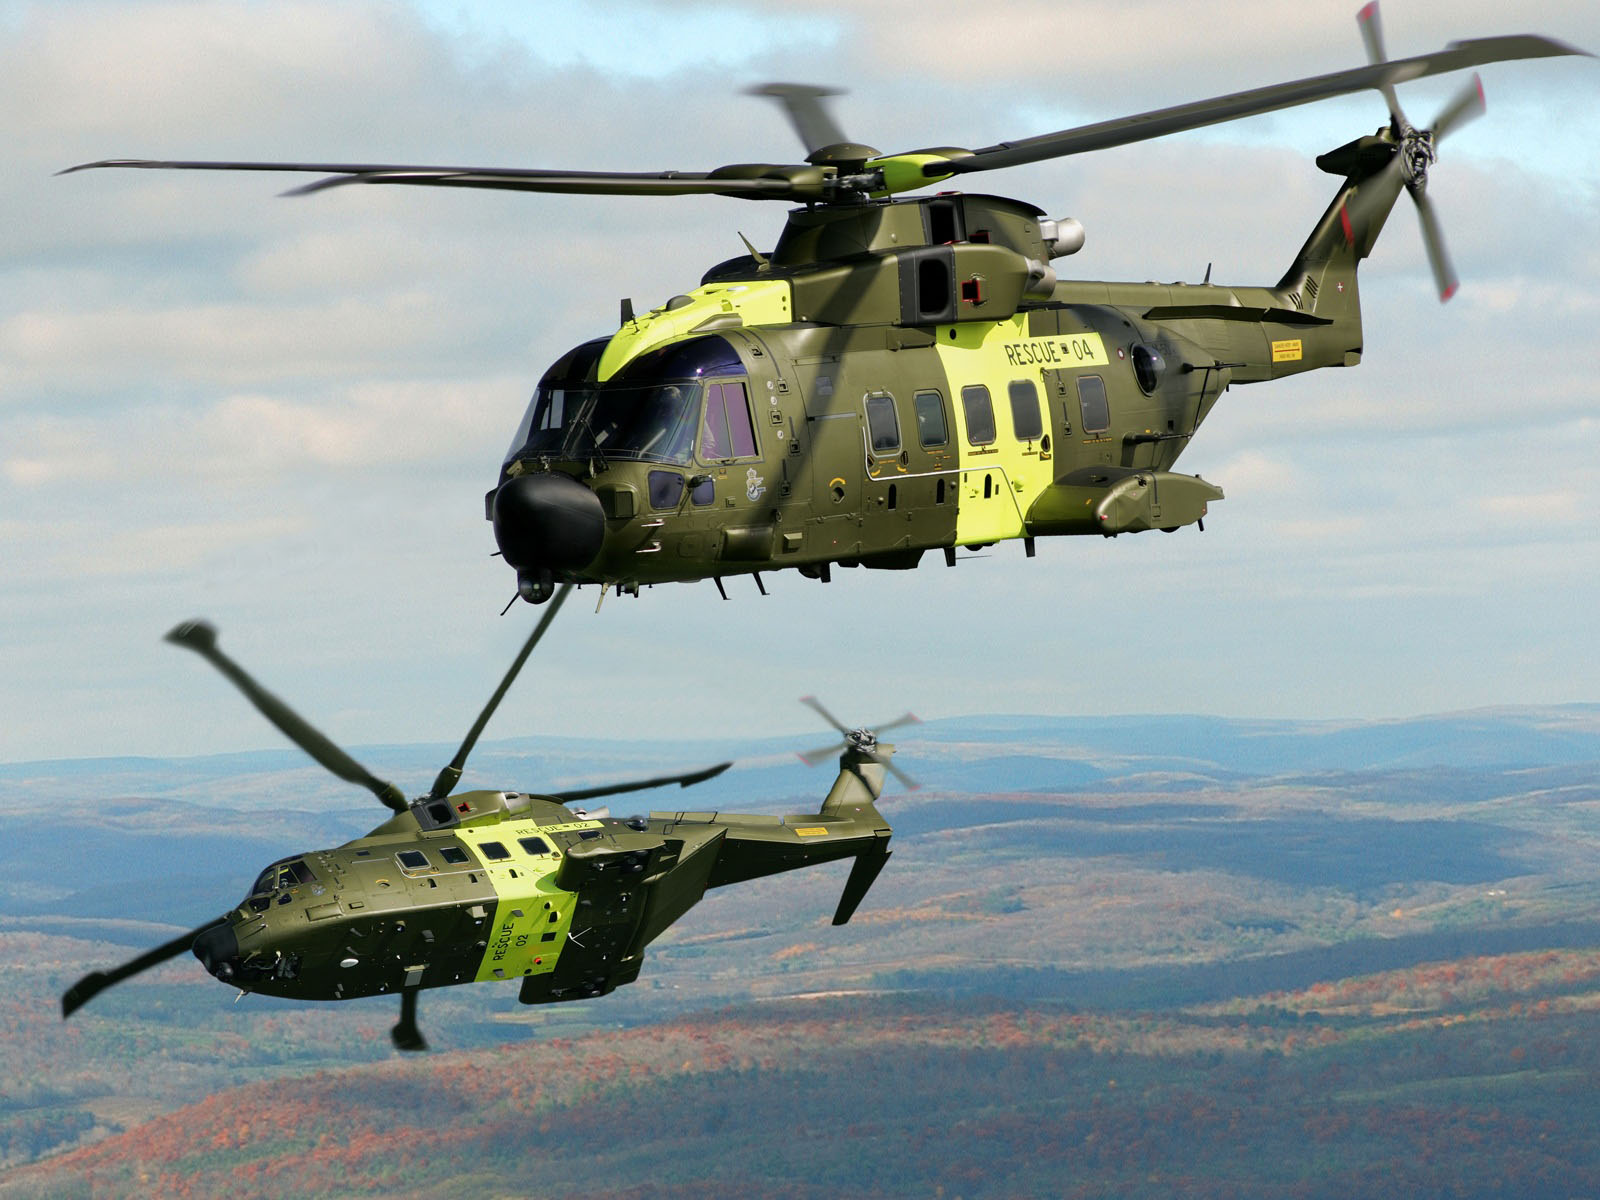 kestrel helicopters with Agusta Westland Aw101 Transport on 408 besides Bell 20212 additionally 1240 as well Merlin Family In Uk Service as well 262.